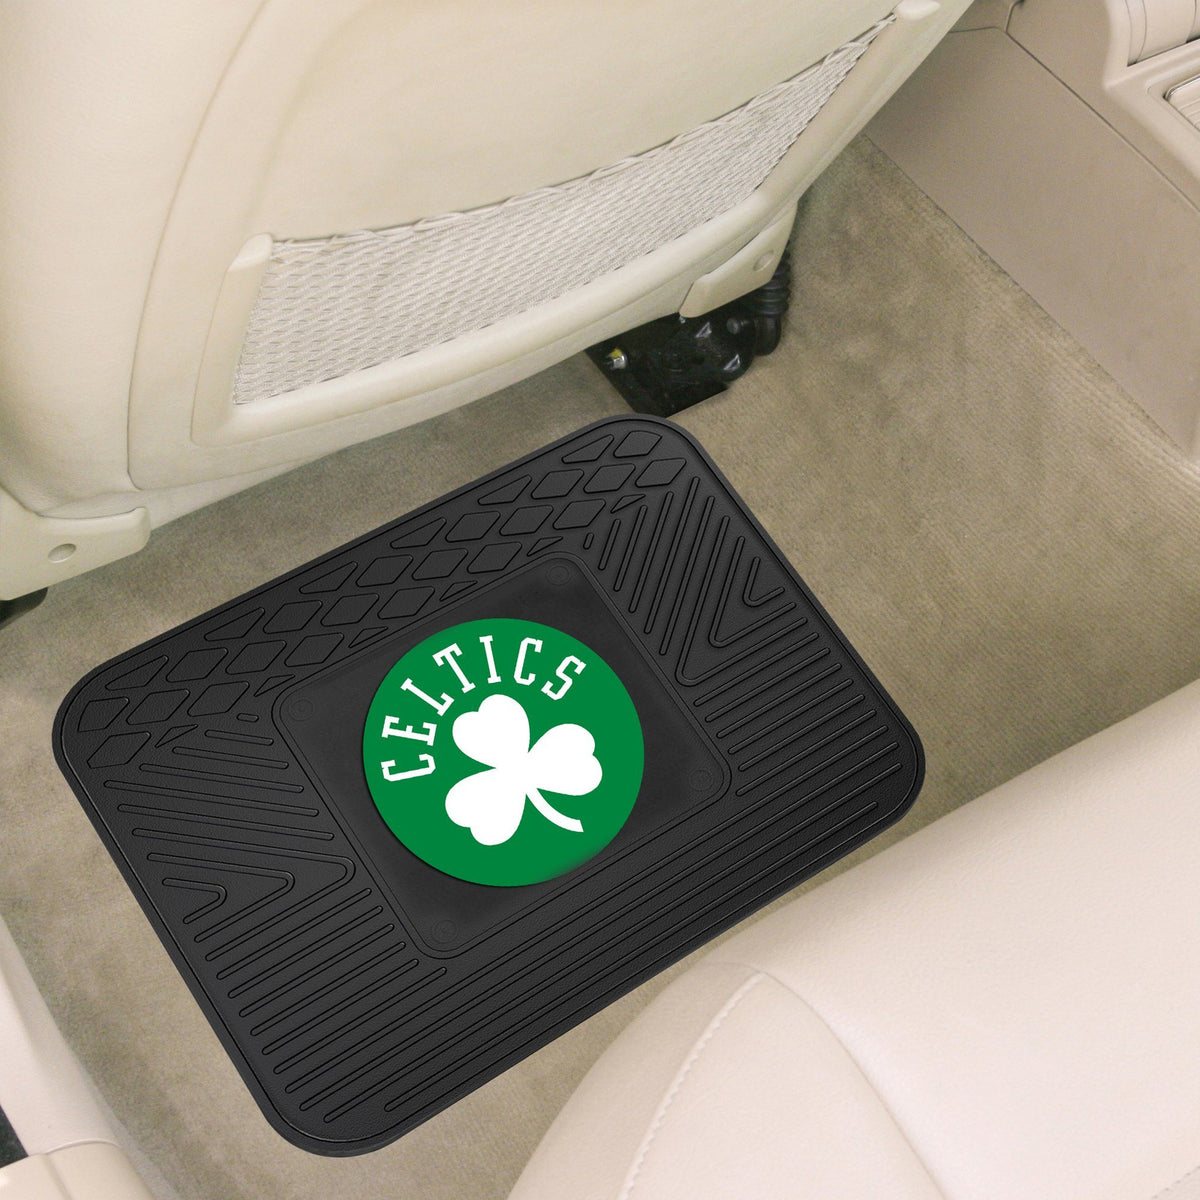 NBA - Utility Mat NBA Mats, Rear Car Mats, Utility Mat, NBA, Auto Fan Mats Boston Celtics